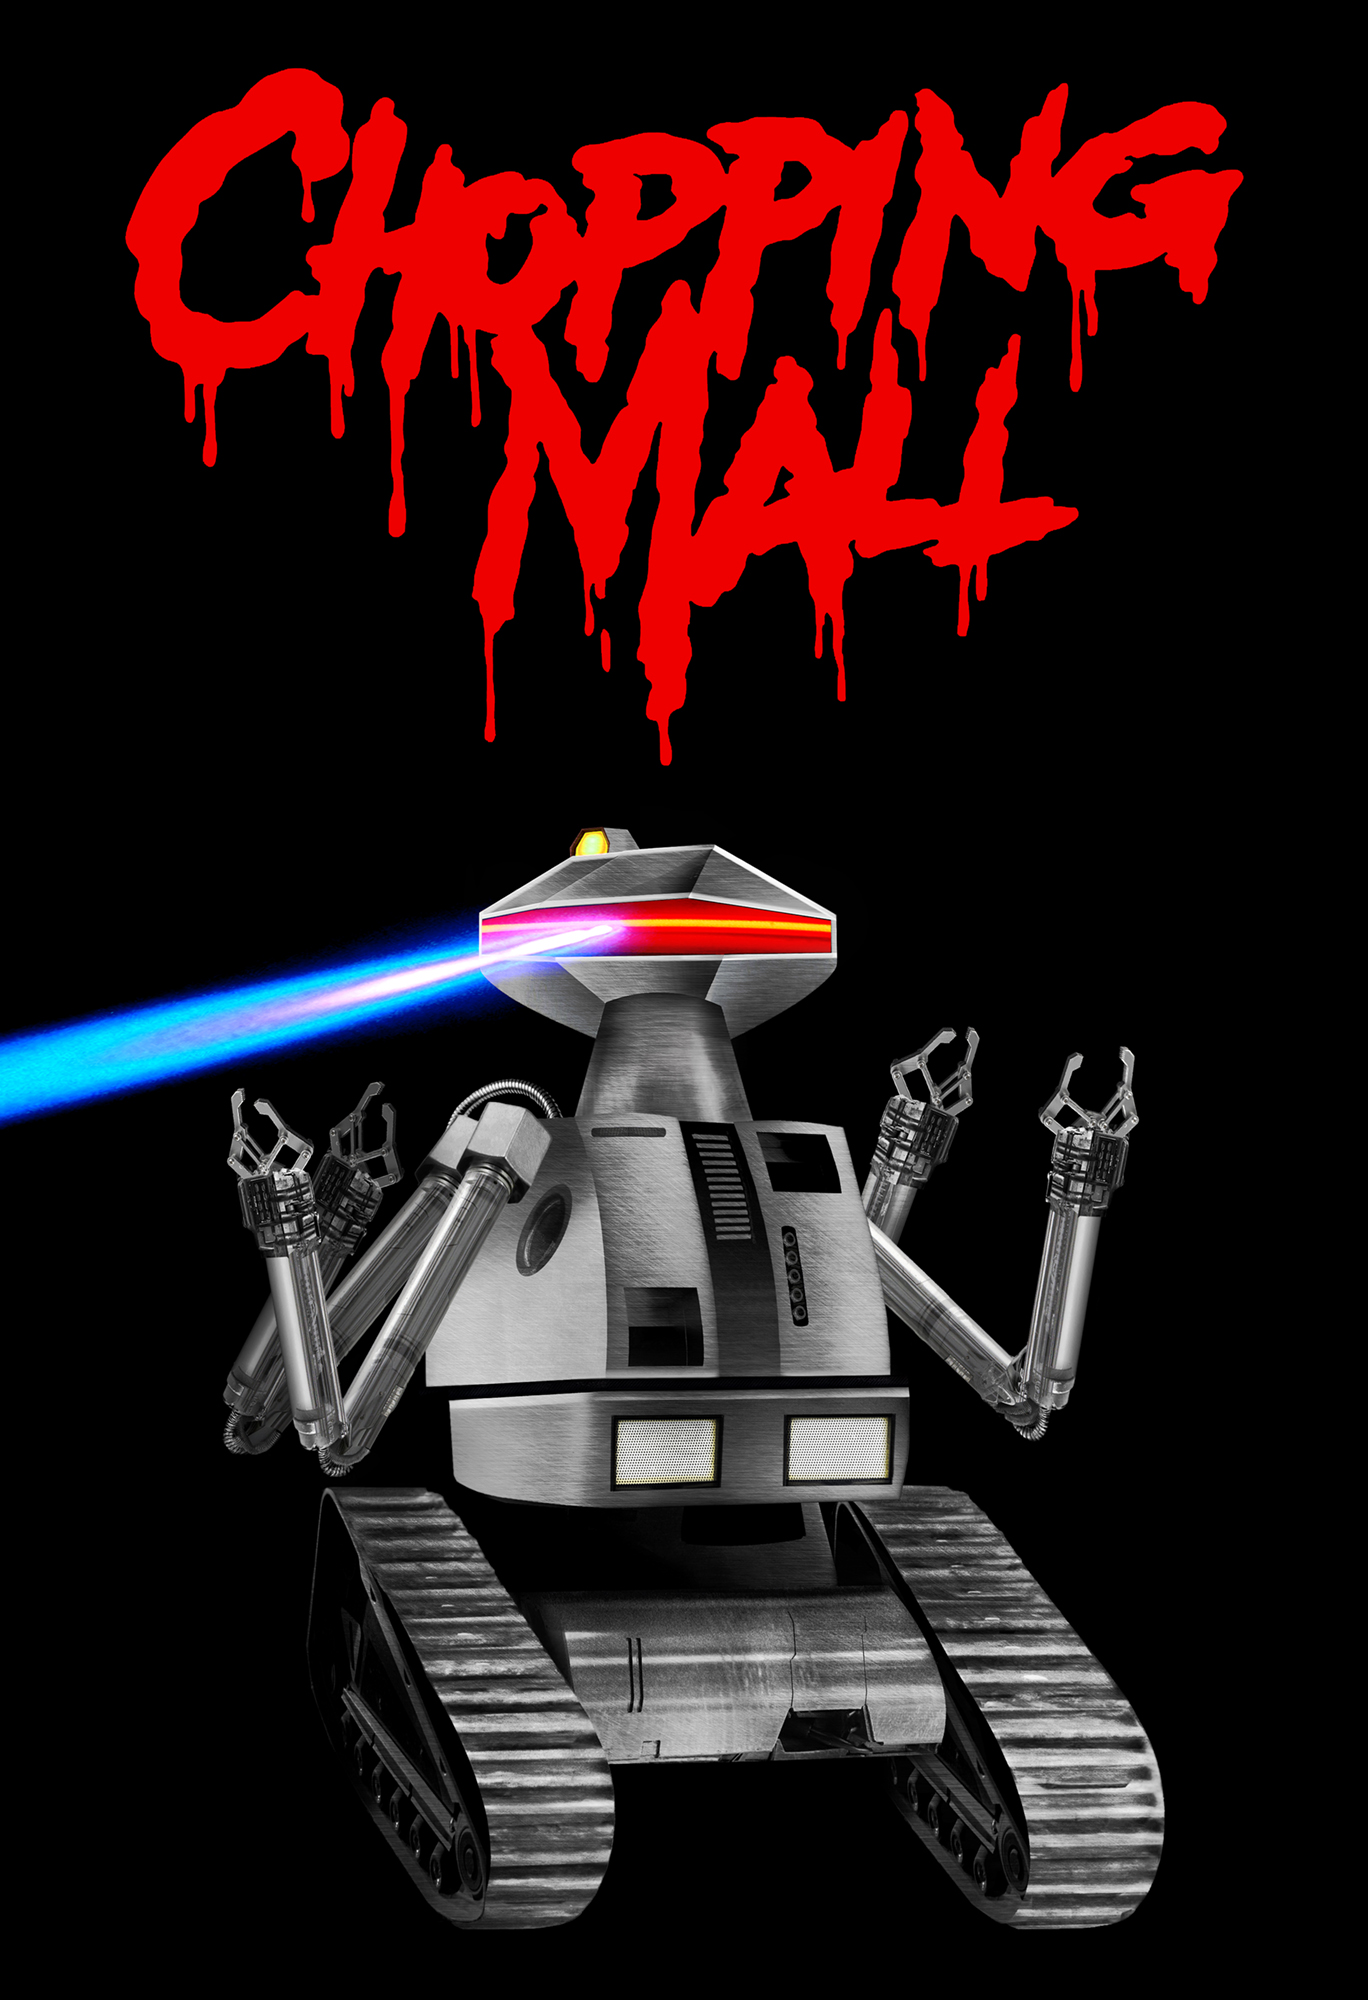 Chopping Mall 11X17 Movie Poster